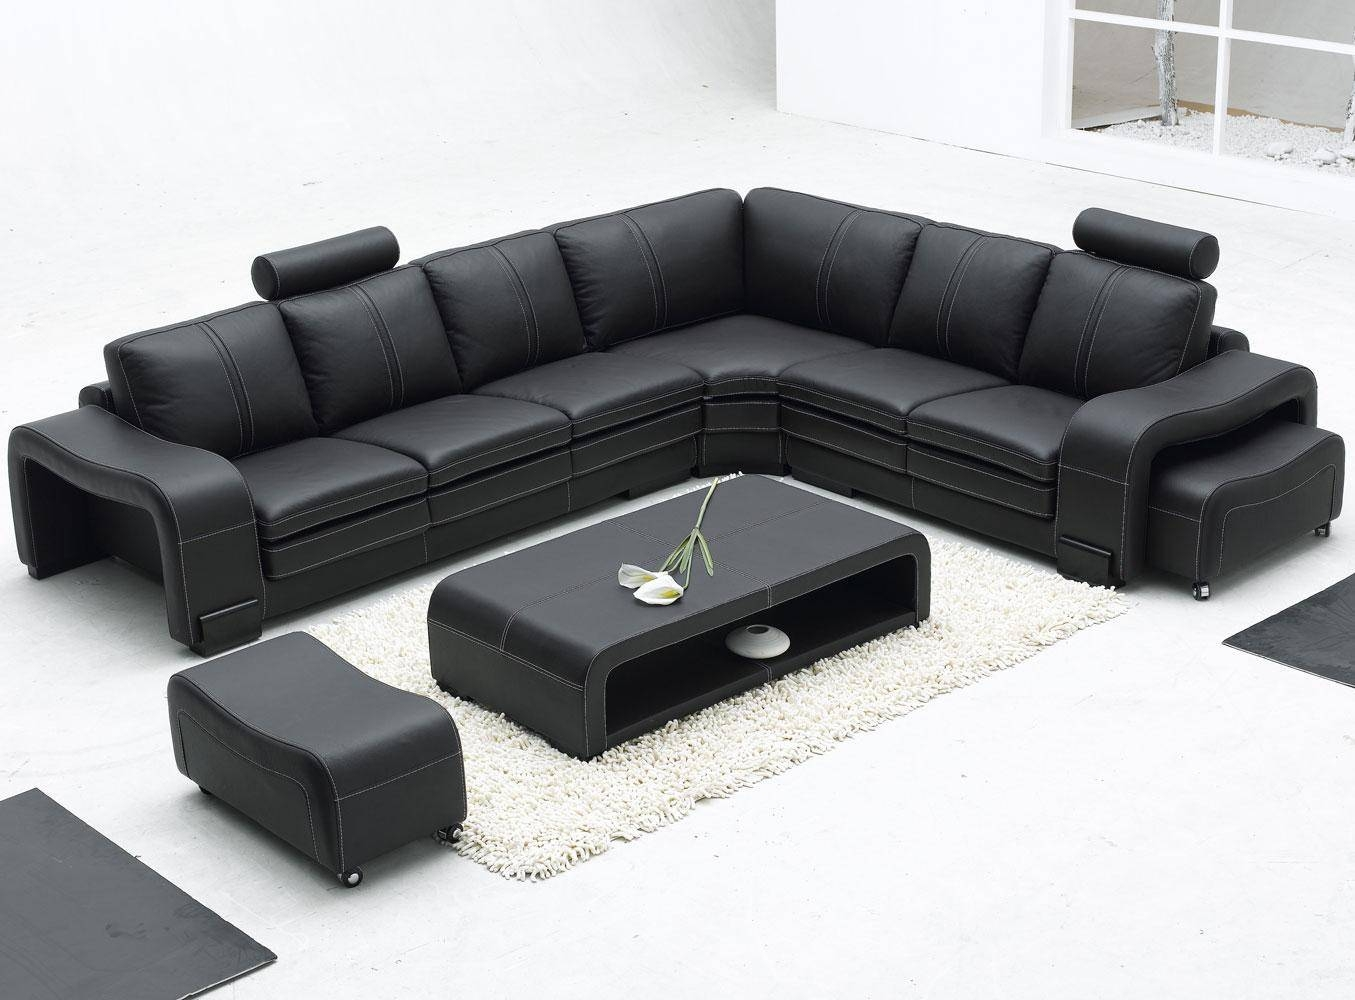 modern bonded leather sectional sofa with recliners four seater sofas fabric 2018 popular long